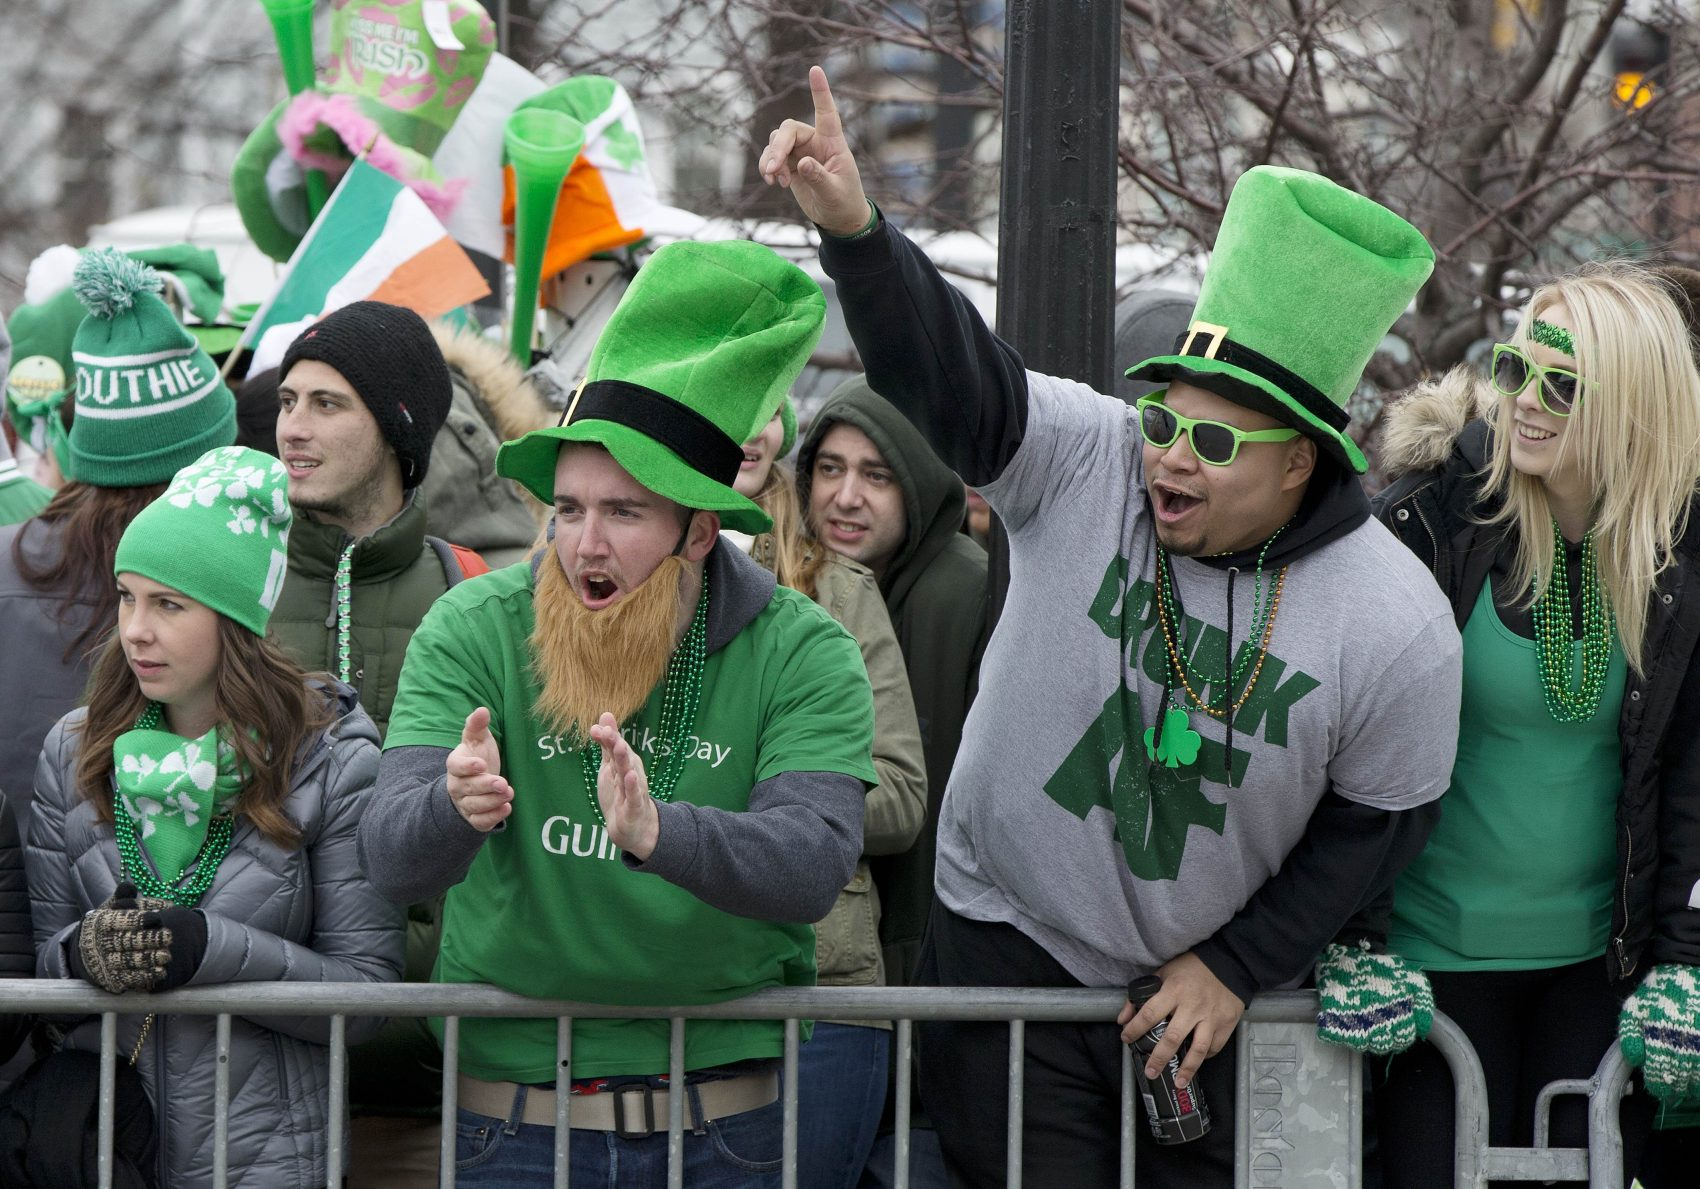 Spectators cheer during the annual St. Patrick's Day parade in Boston in 2017. (Michael Dwyer/AP)